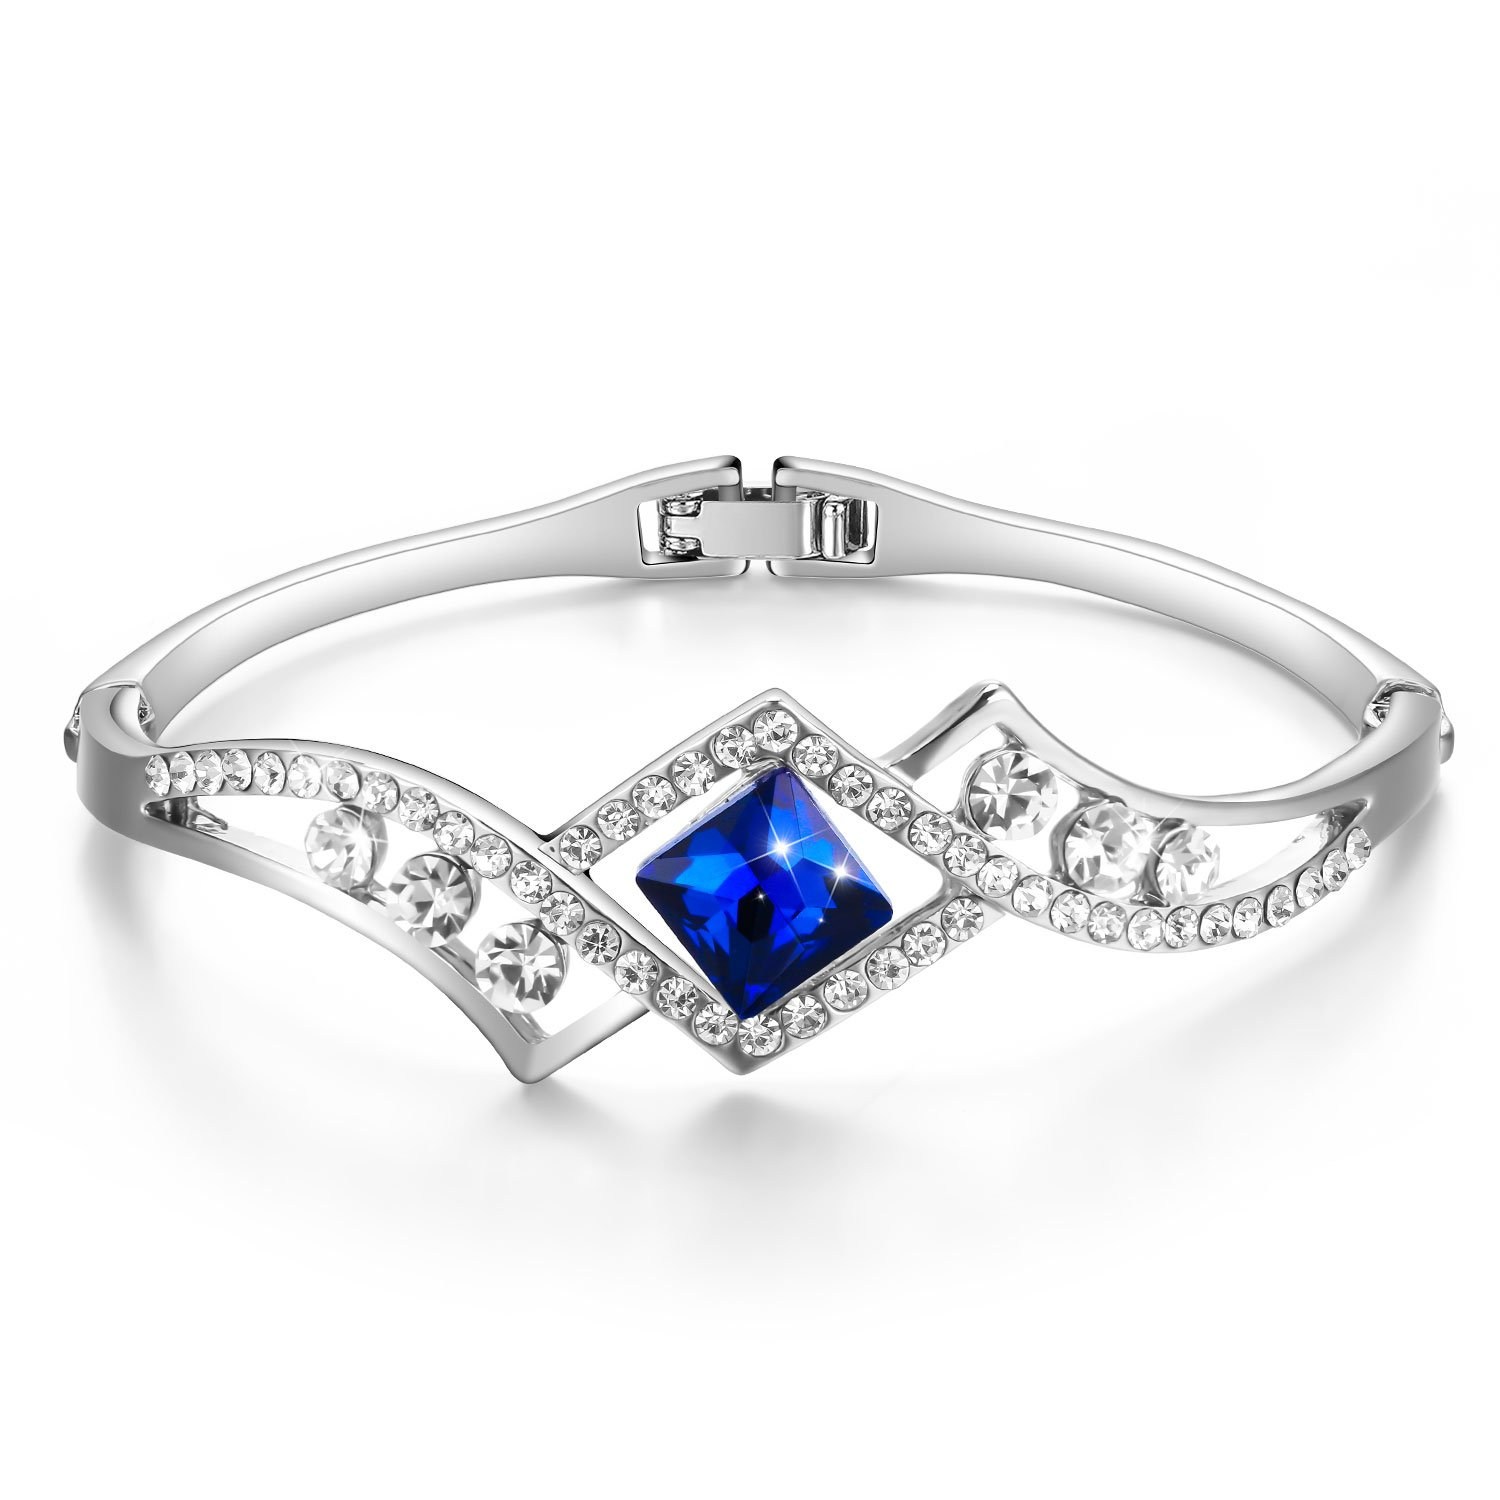 "Menton Ezil ""Eternal Love"" Blue Crystals Bangle Bracelet For Her Graduation Jewelry -Wedding Gift"